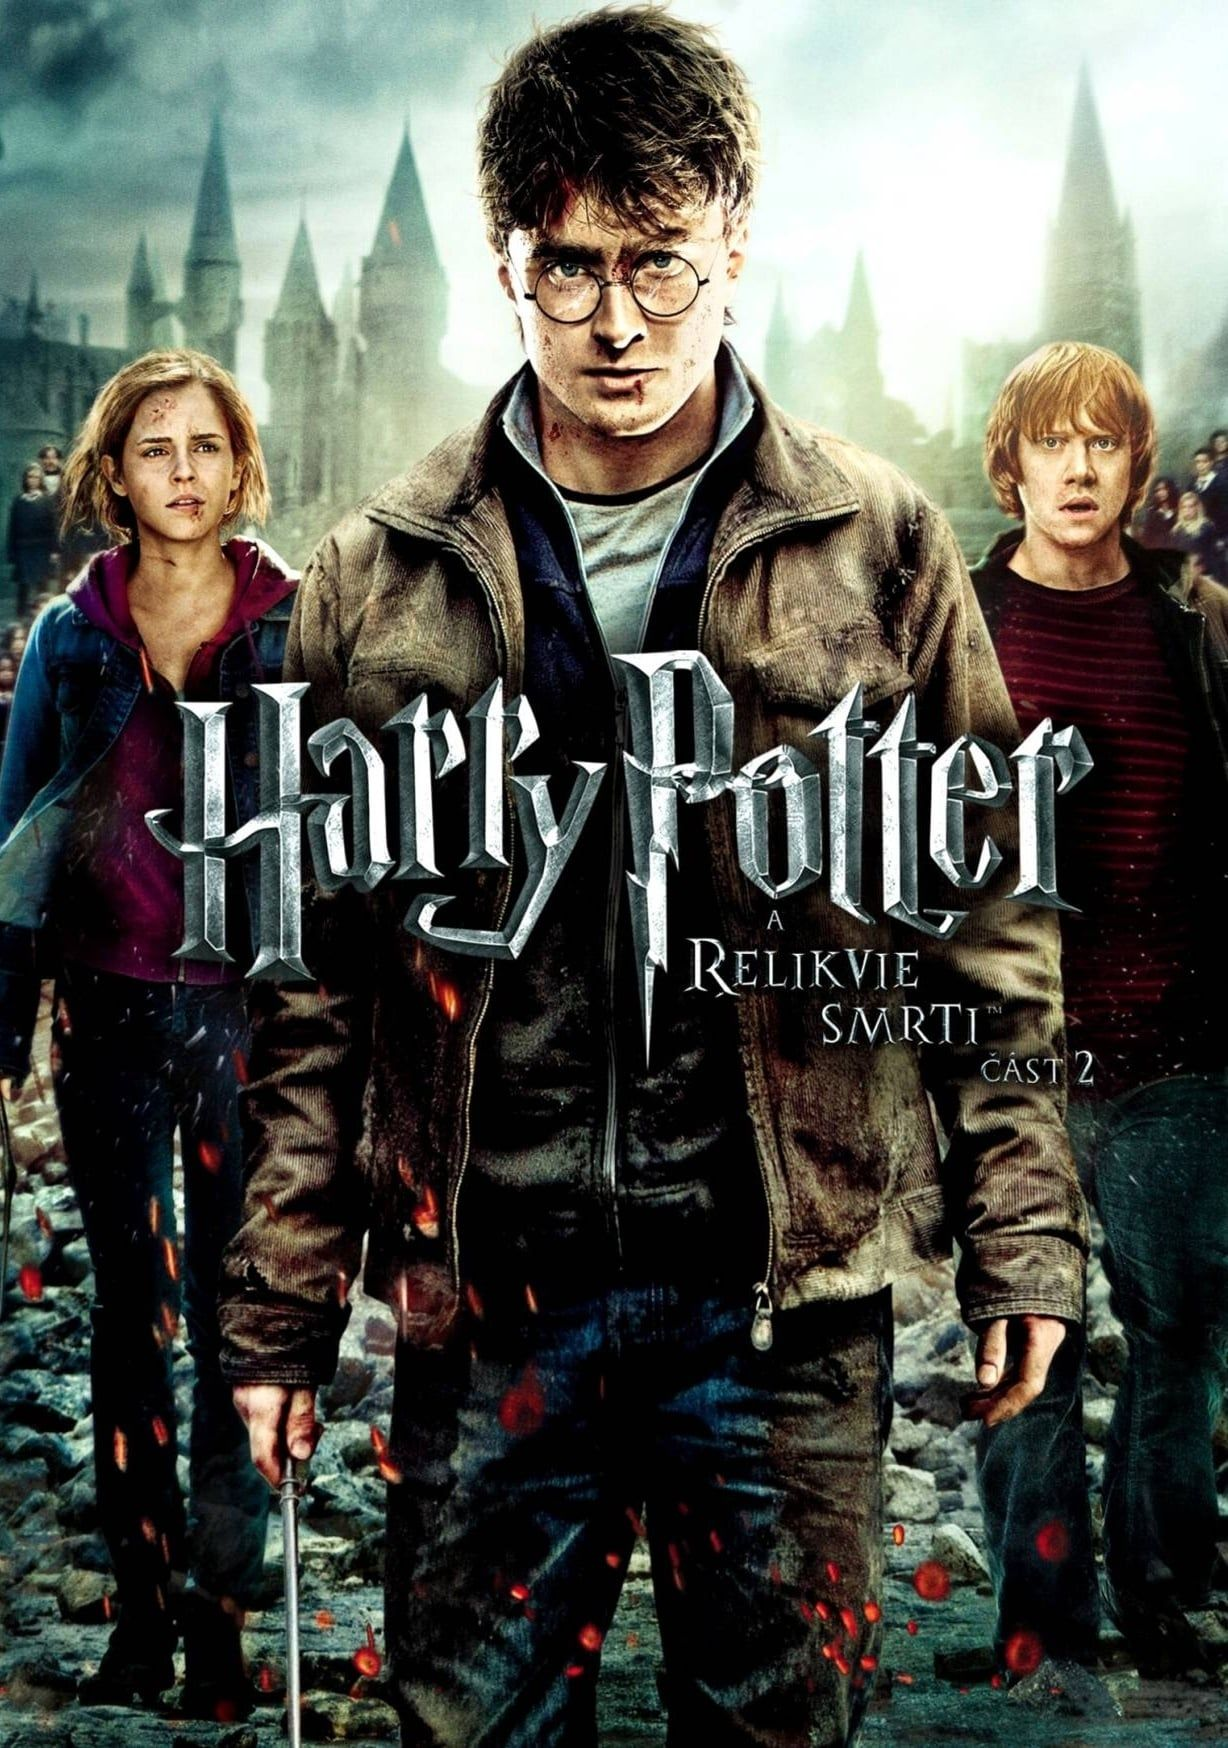 deathly hallows part 2 free movie online